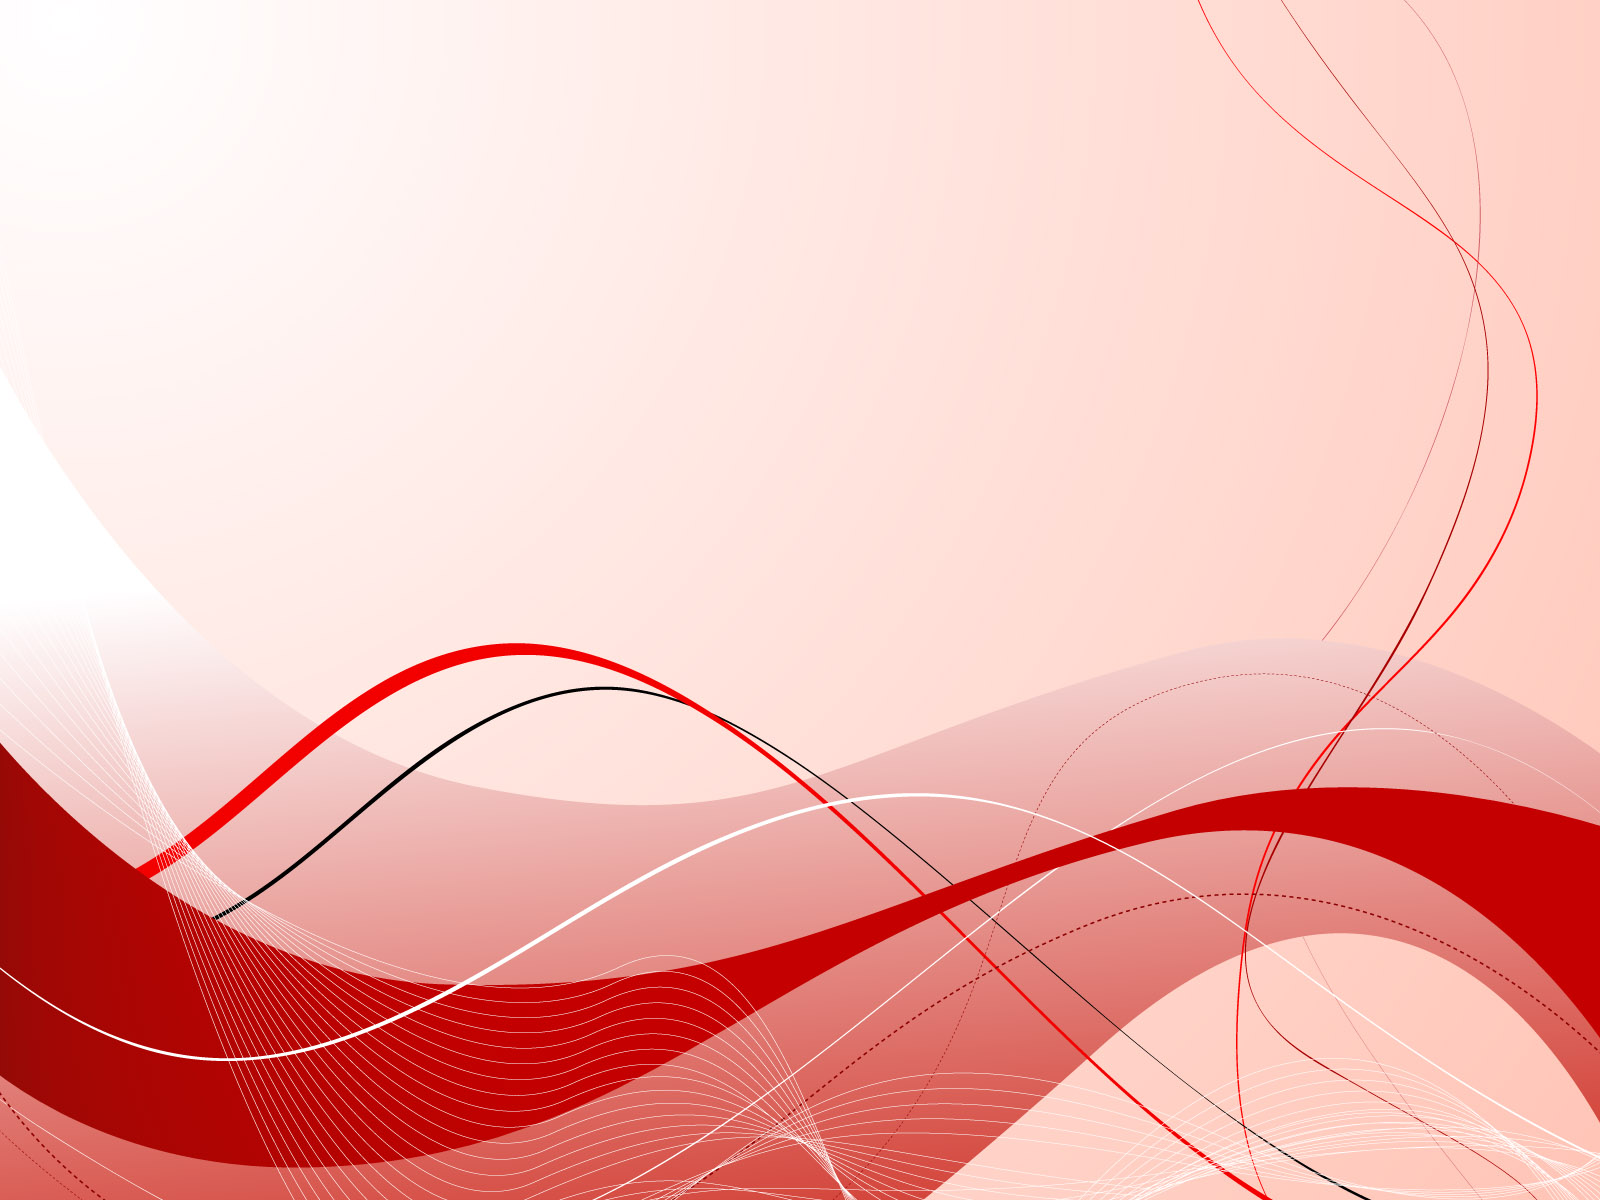 red and white background clipart